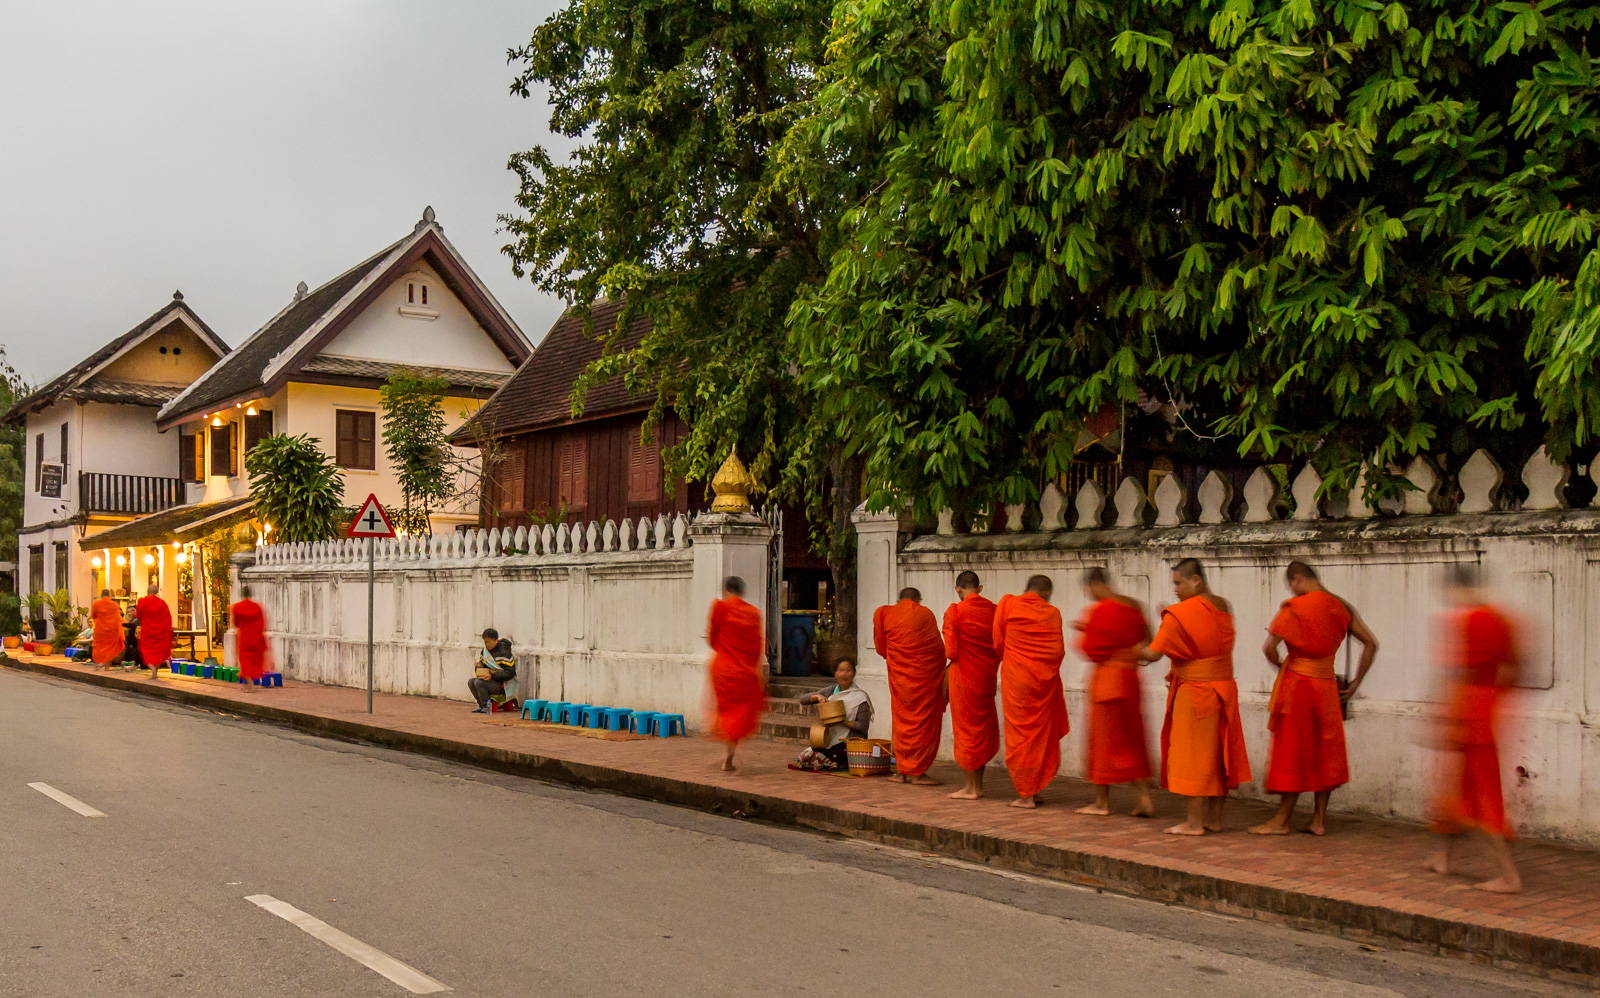 The monks made their appearance.